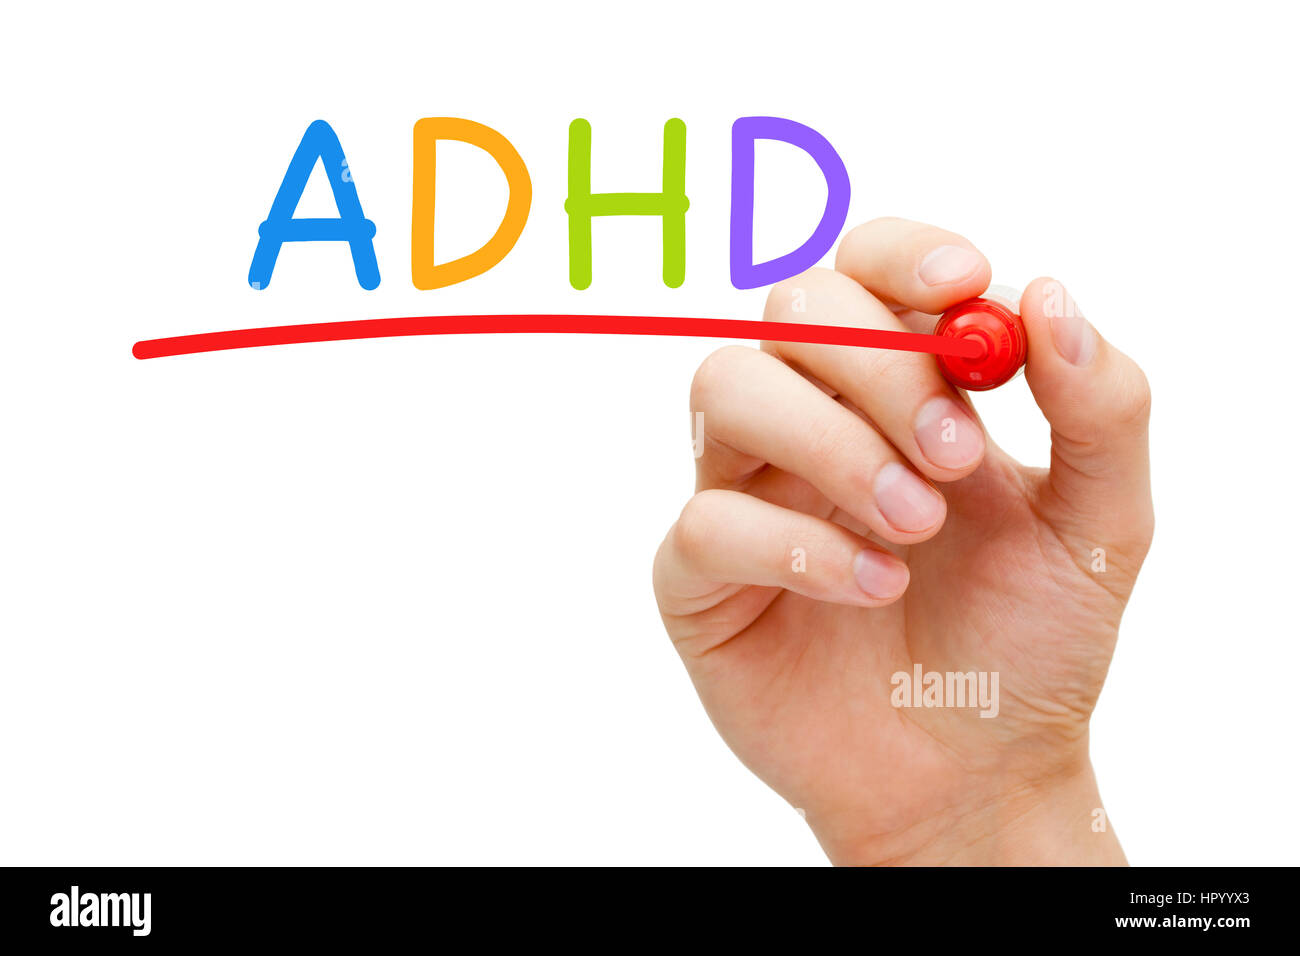 Hand writing ADHD Attention Deficit Hyperactivity Disorder with marker on transparent glass board. - Stock Image